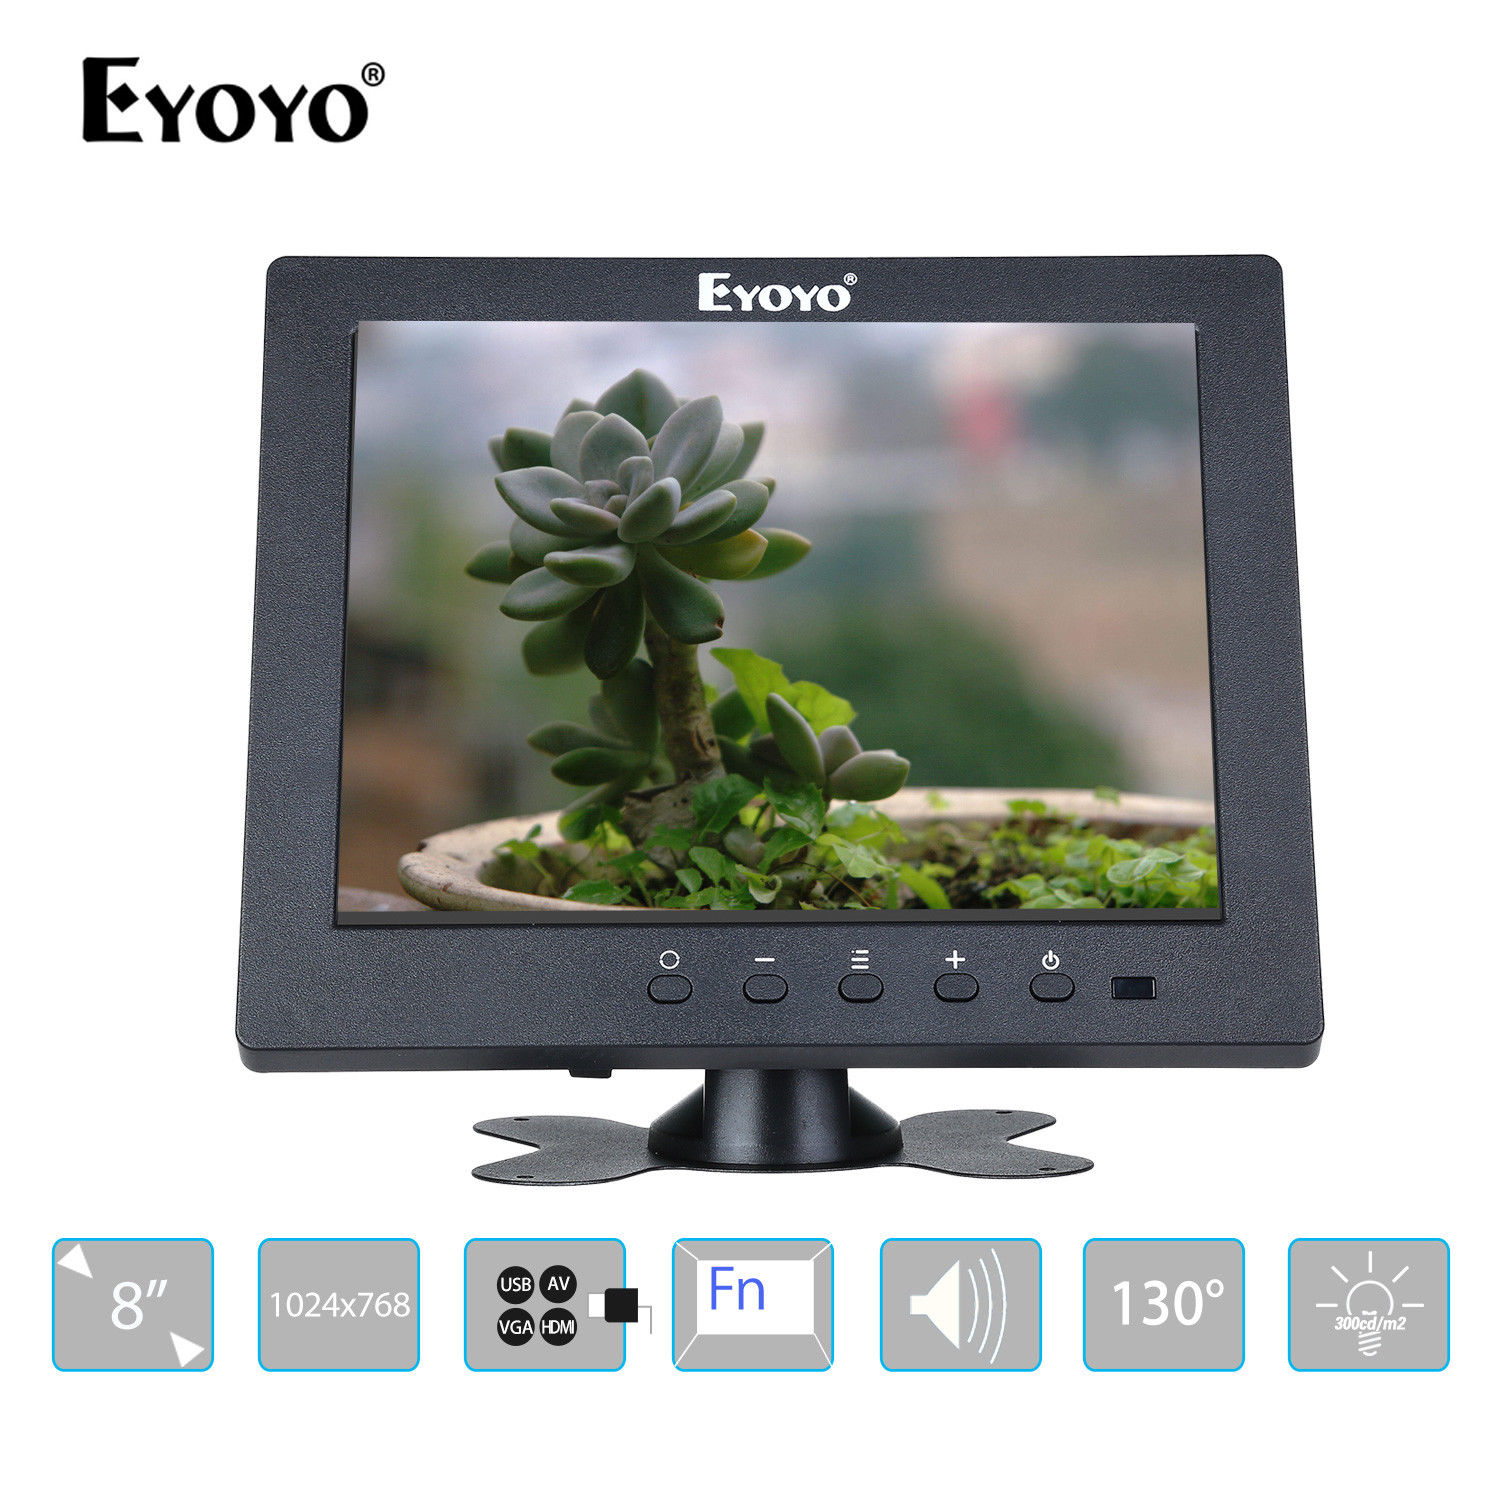 Eyoyo S801T Monitor 8 1024x768 LCD Screen Display For CCTV DVD PC Laptop DVR Camera With BNC HDMl Output Built-in Loudspeakers eyoyo g08 160 degree 8 inch 400 1 tft lcd monitor screen 4 3 1024 768 hdmi av vga video audio for cctv fpv with loudspeaker